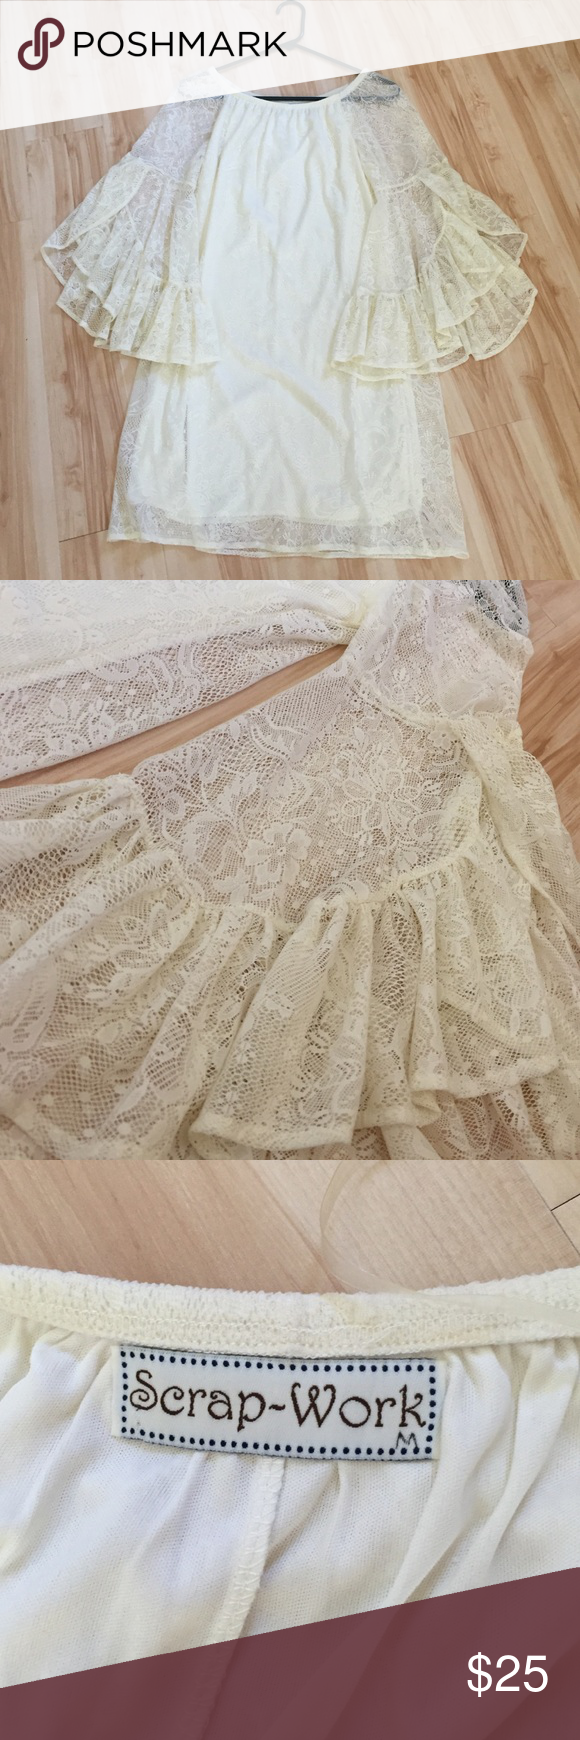 Lace dress vintage  Vintage Lace Dress Excellent condition Beautiful lace work with a